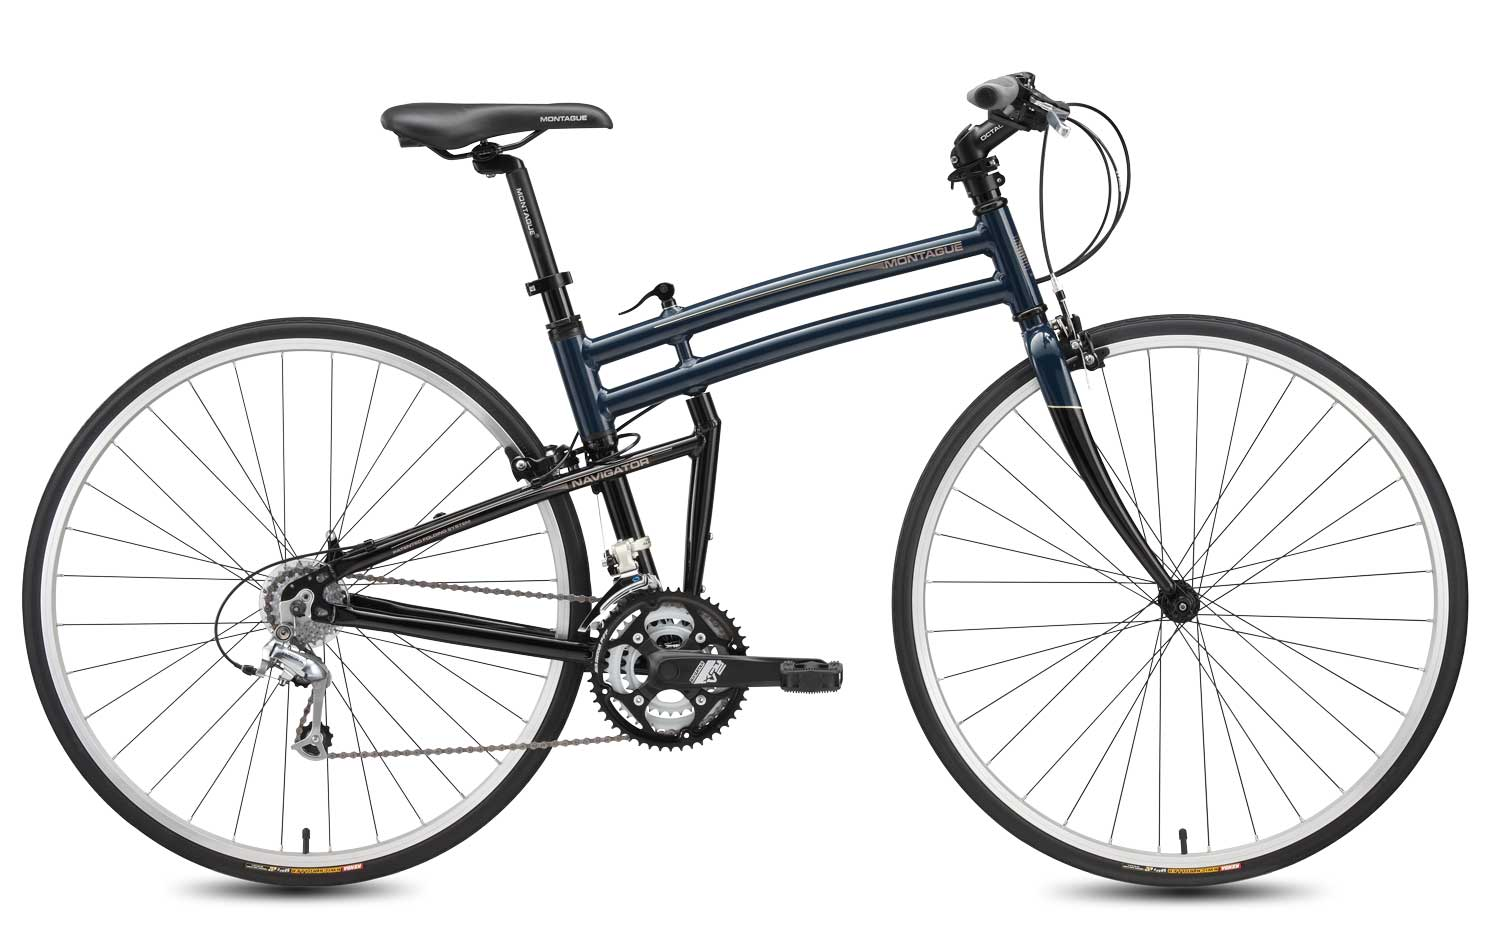 2010 Navigator Pavement Folding Bike